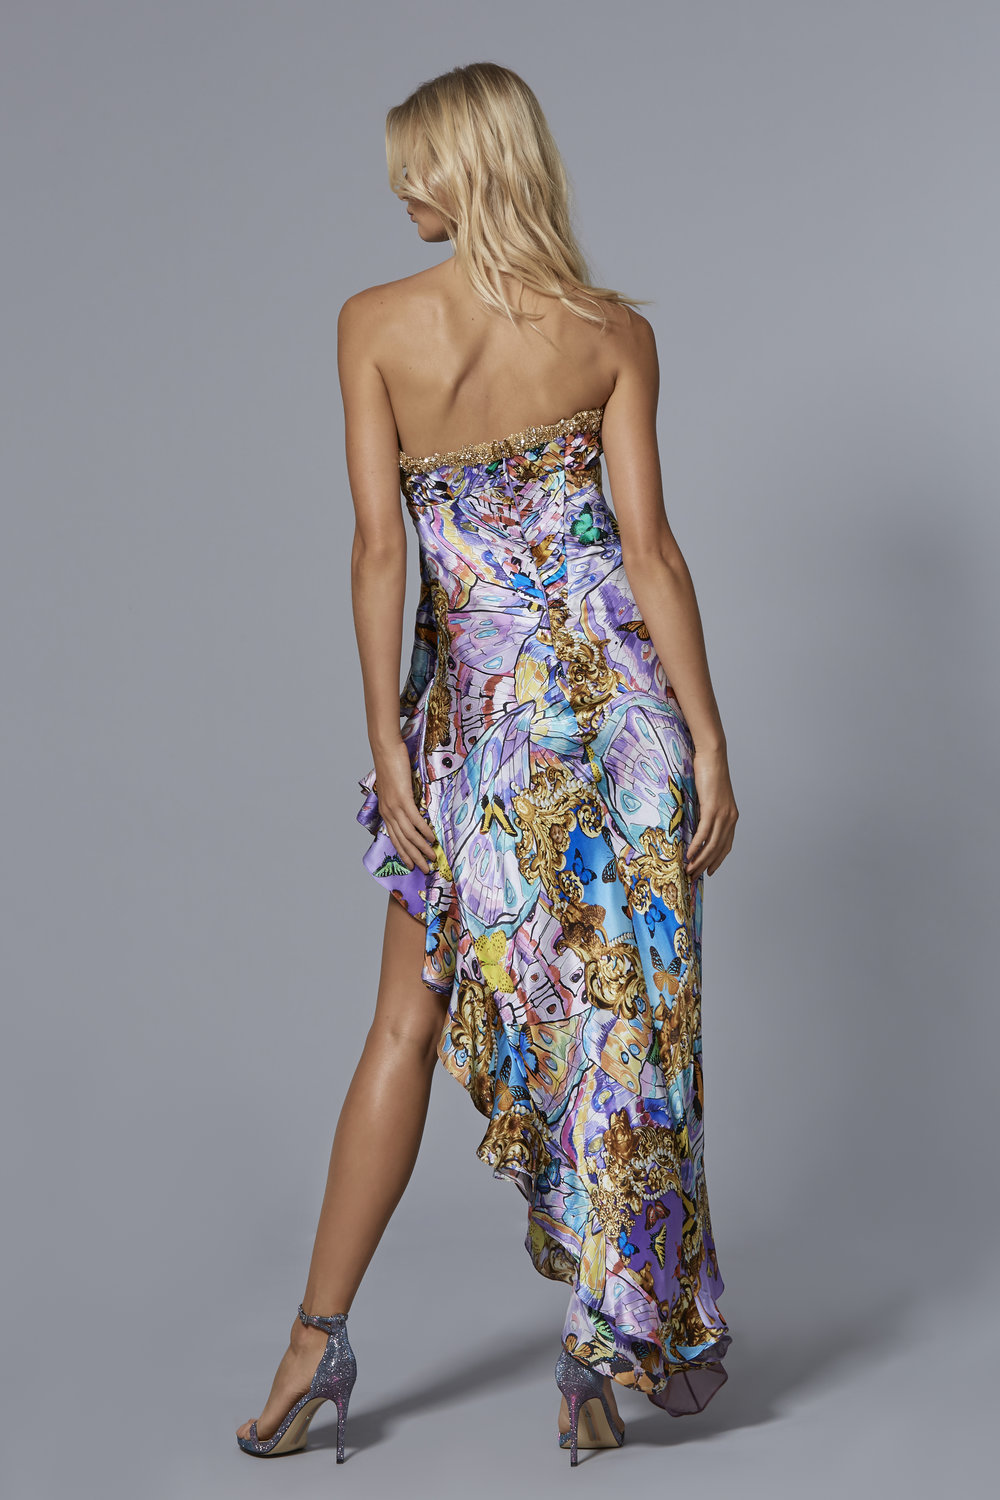 CLAUDIO CINA   LOOK 11: BACK VIEW  Psychedelic Butterfly Printed Gown With Chiffon Layered Skirt & Crystal Embroidered Neckline